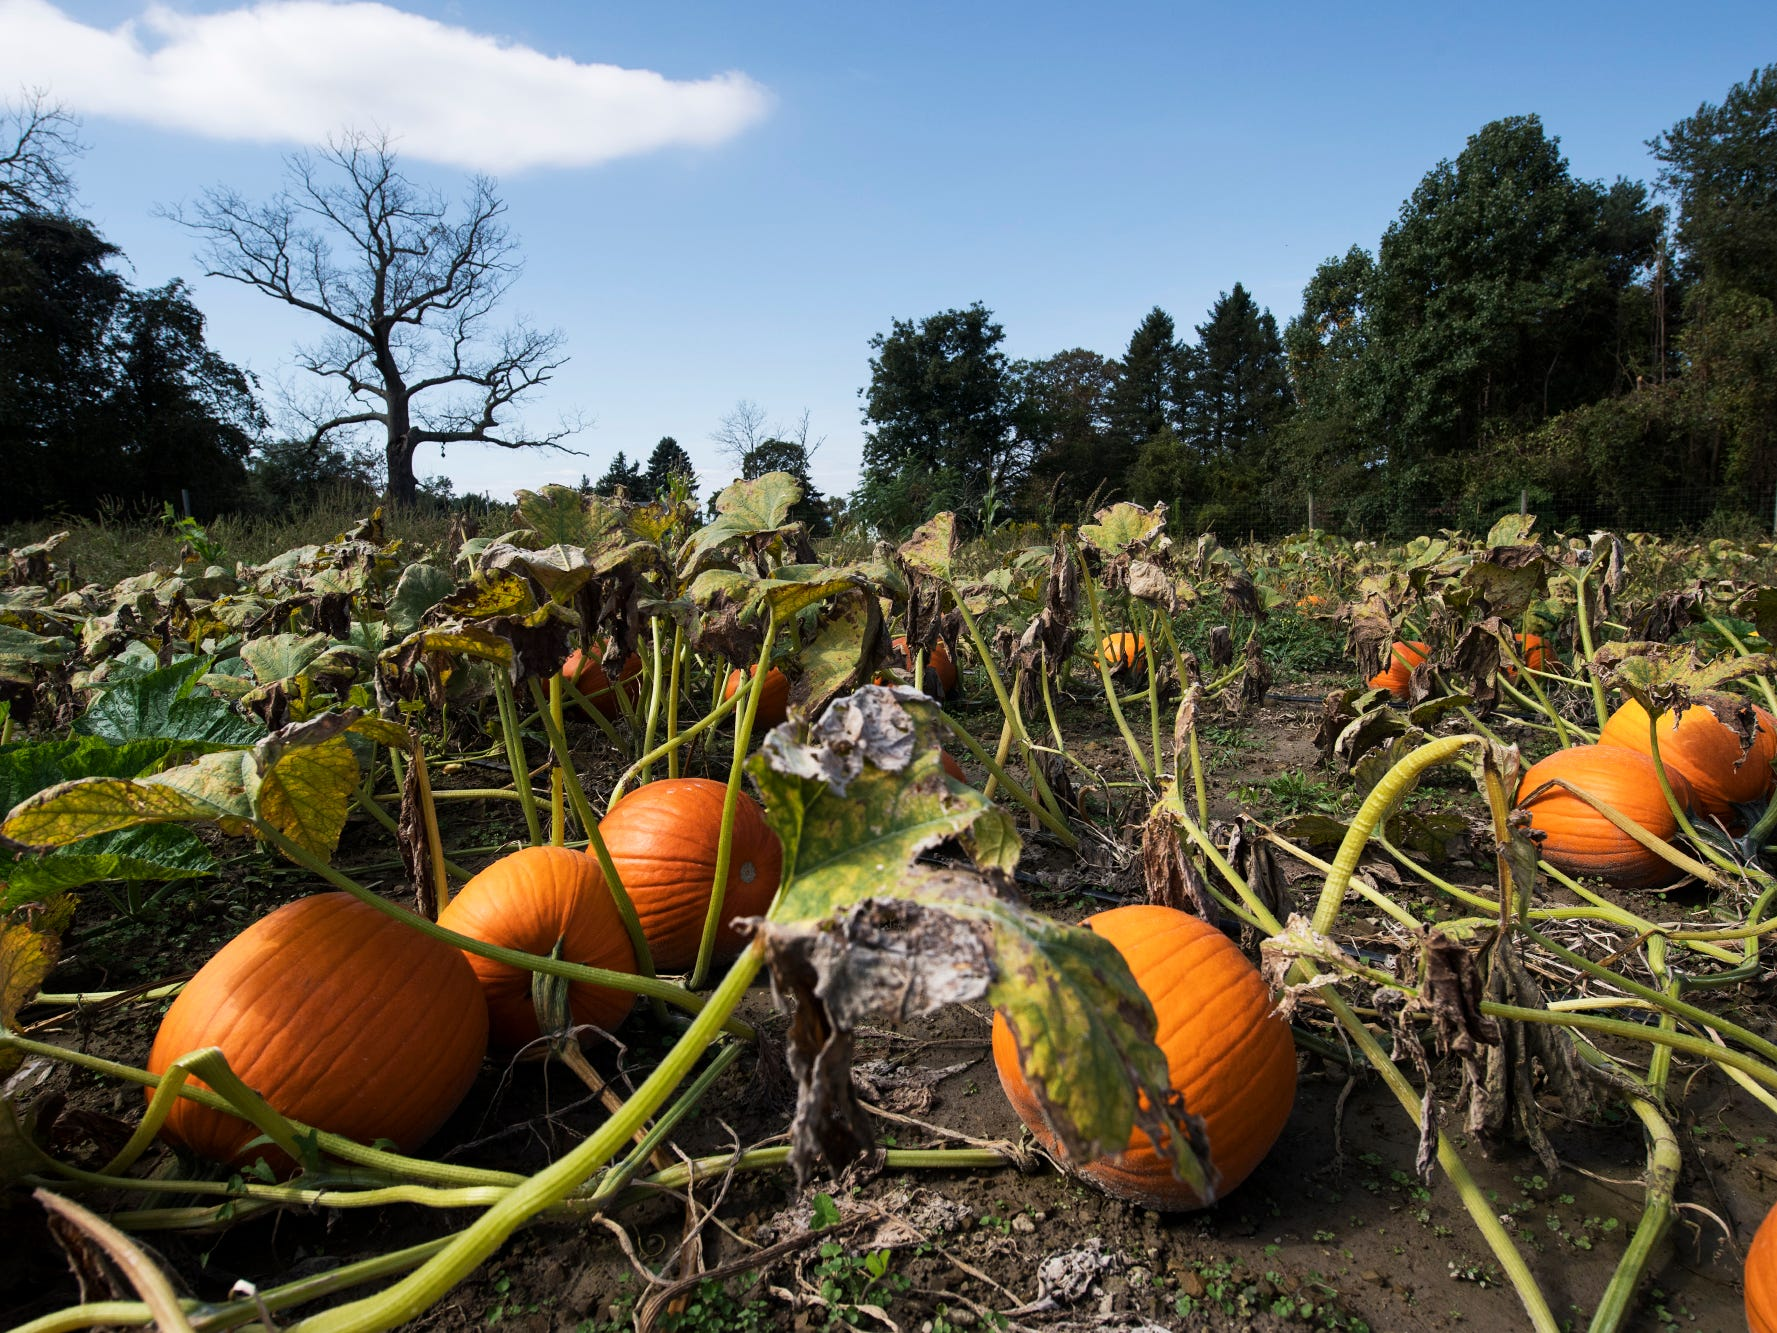 There are plenty of pumpkins in the u-pick field at Paulus Orchards in northern York County.